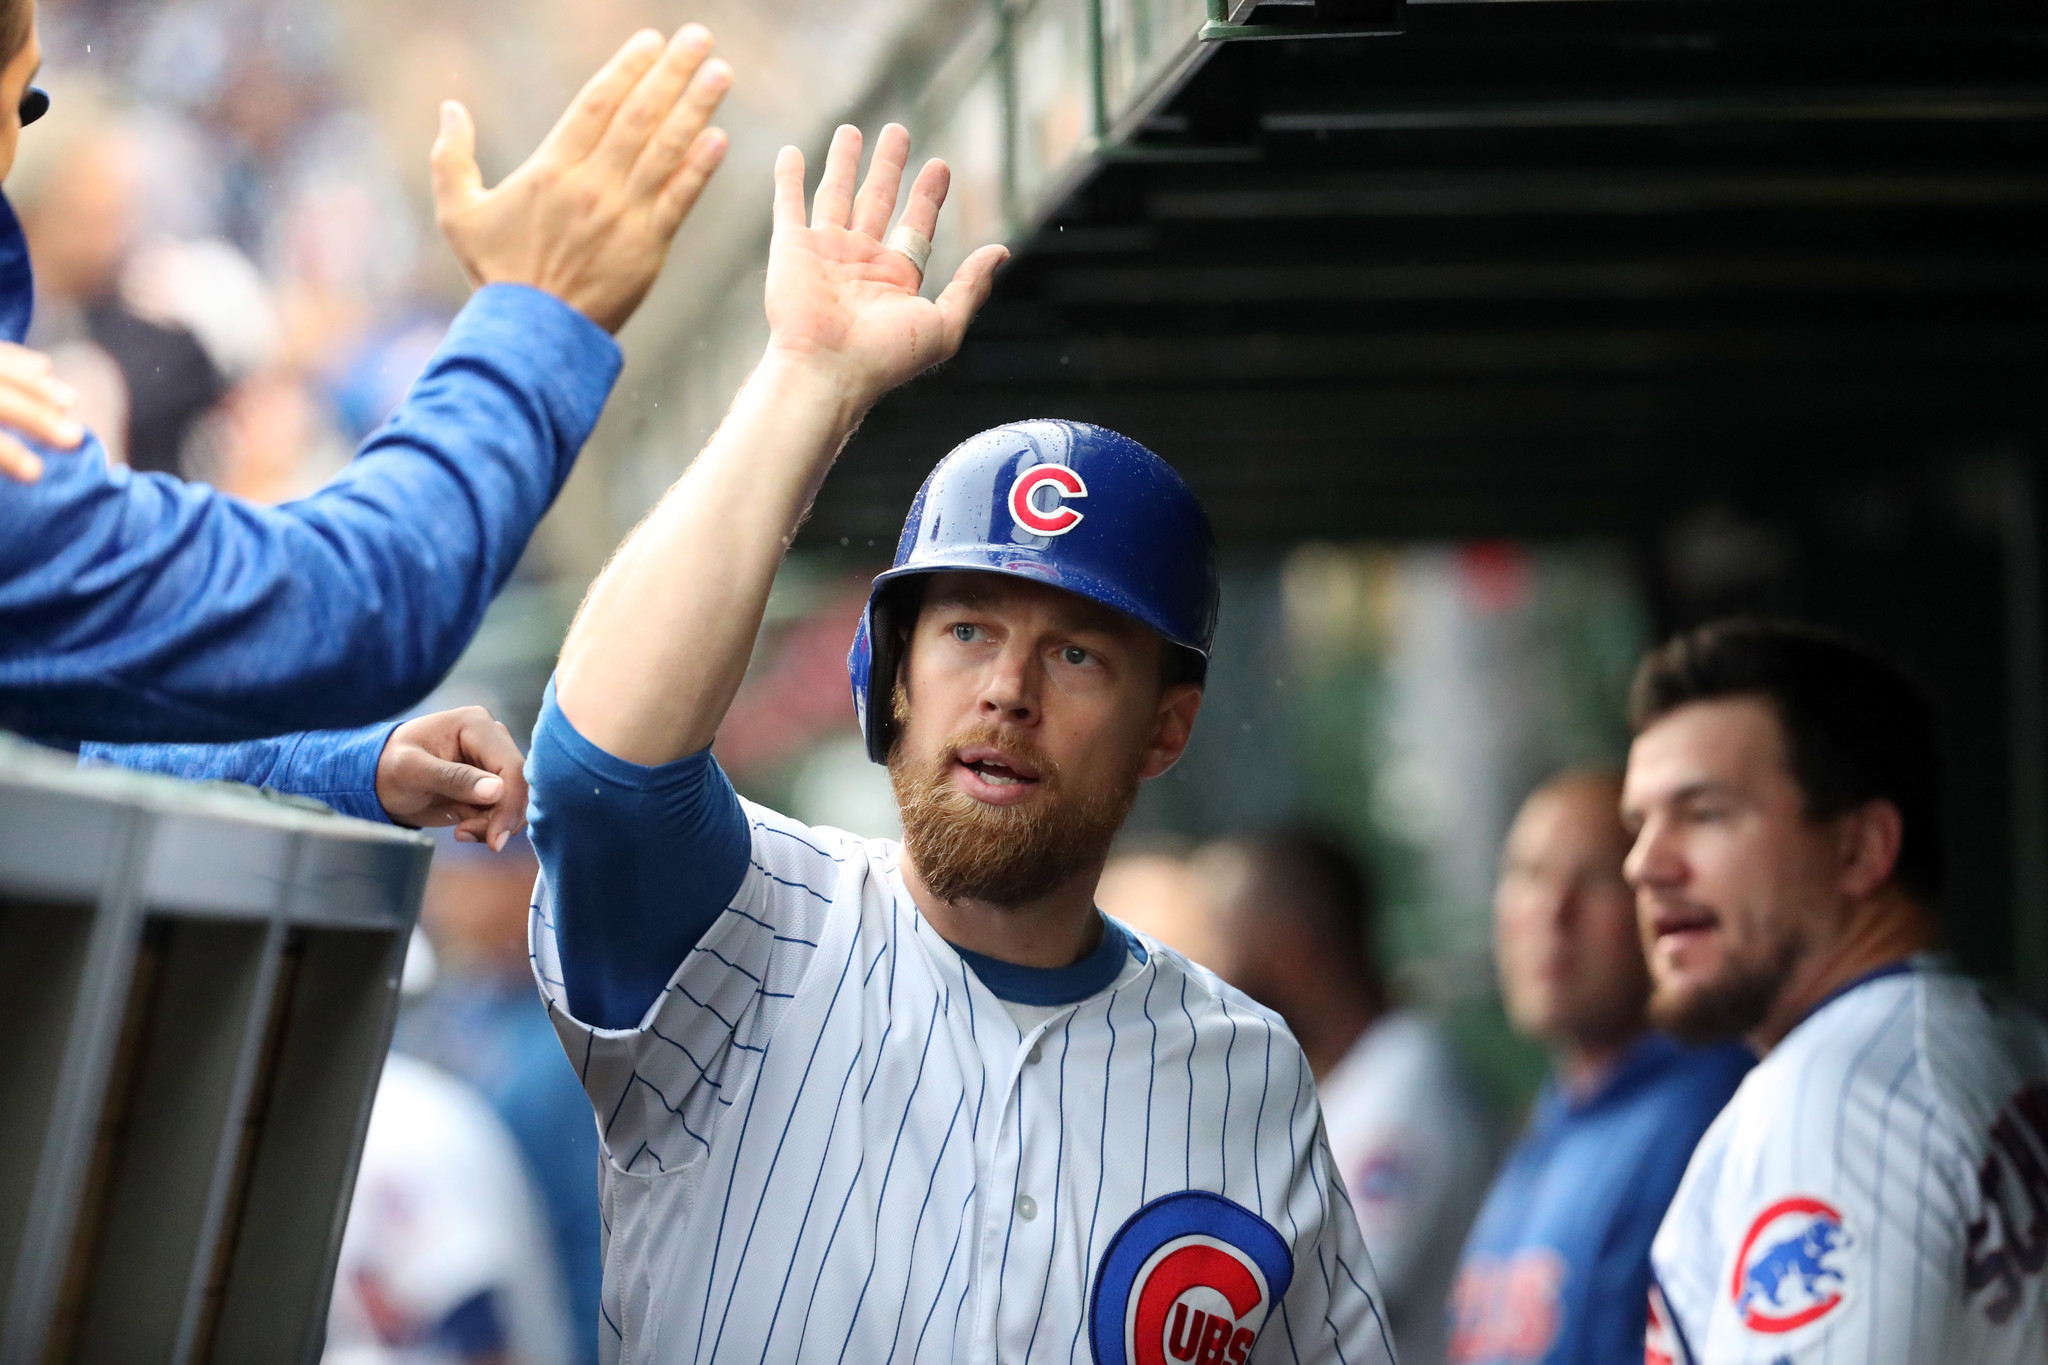 Ben Zobrist was on the verge of quitting baseball in 2000. But a $50 tryout put him on the path to the major leagues — and the Cubs